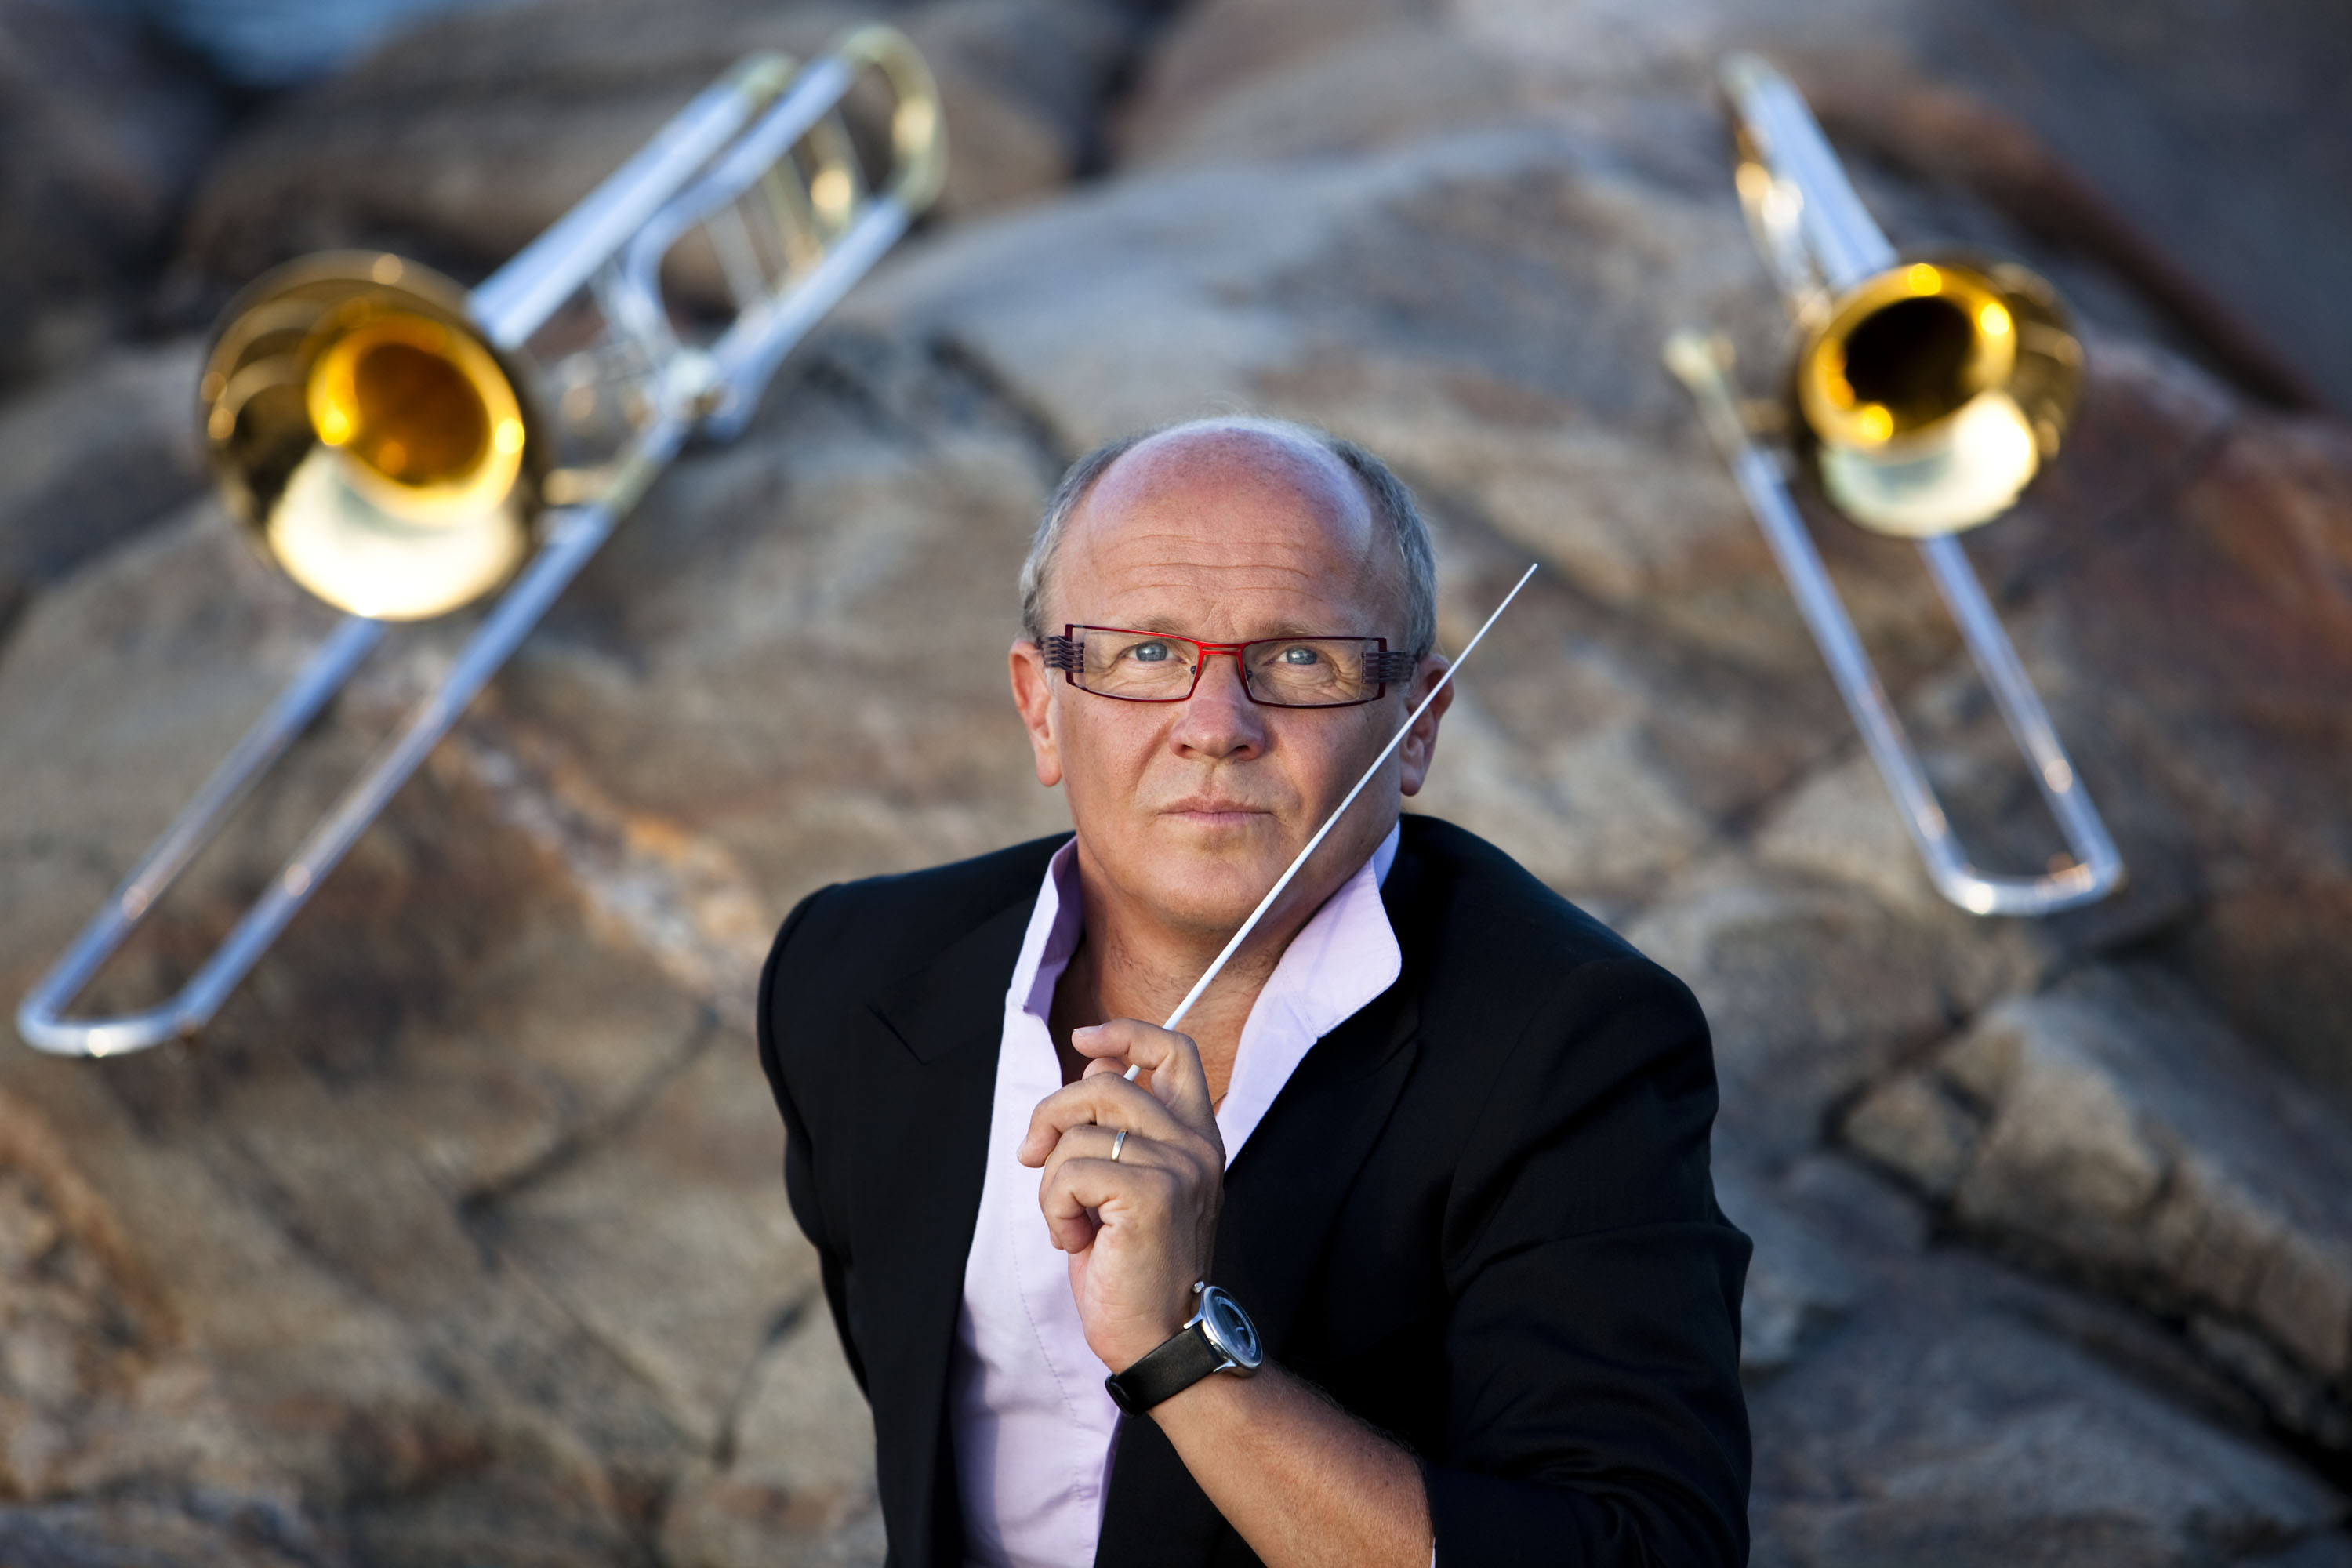 Christian Lindberg, trombone player, composer, and conductor